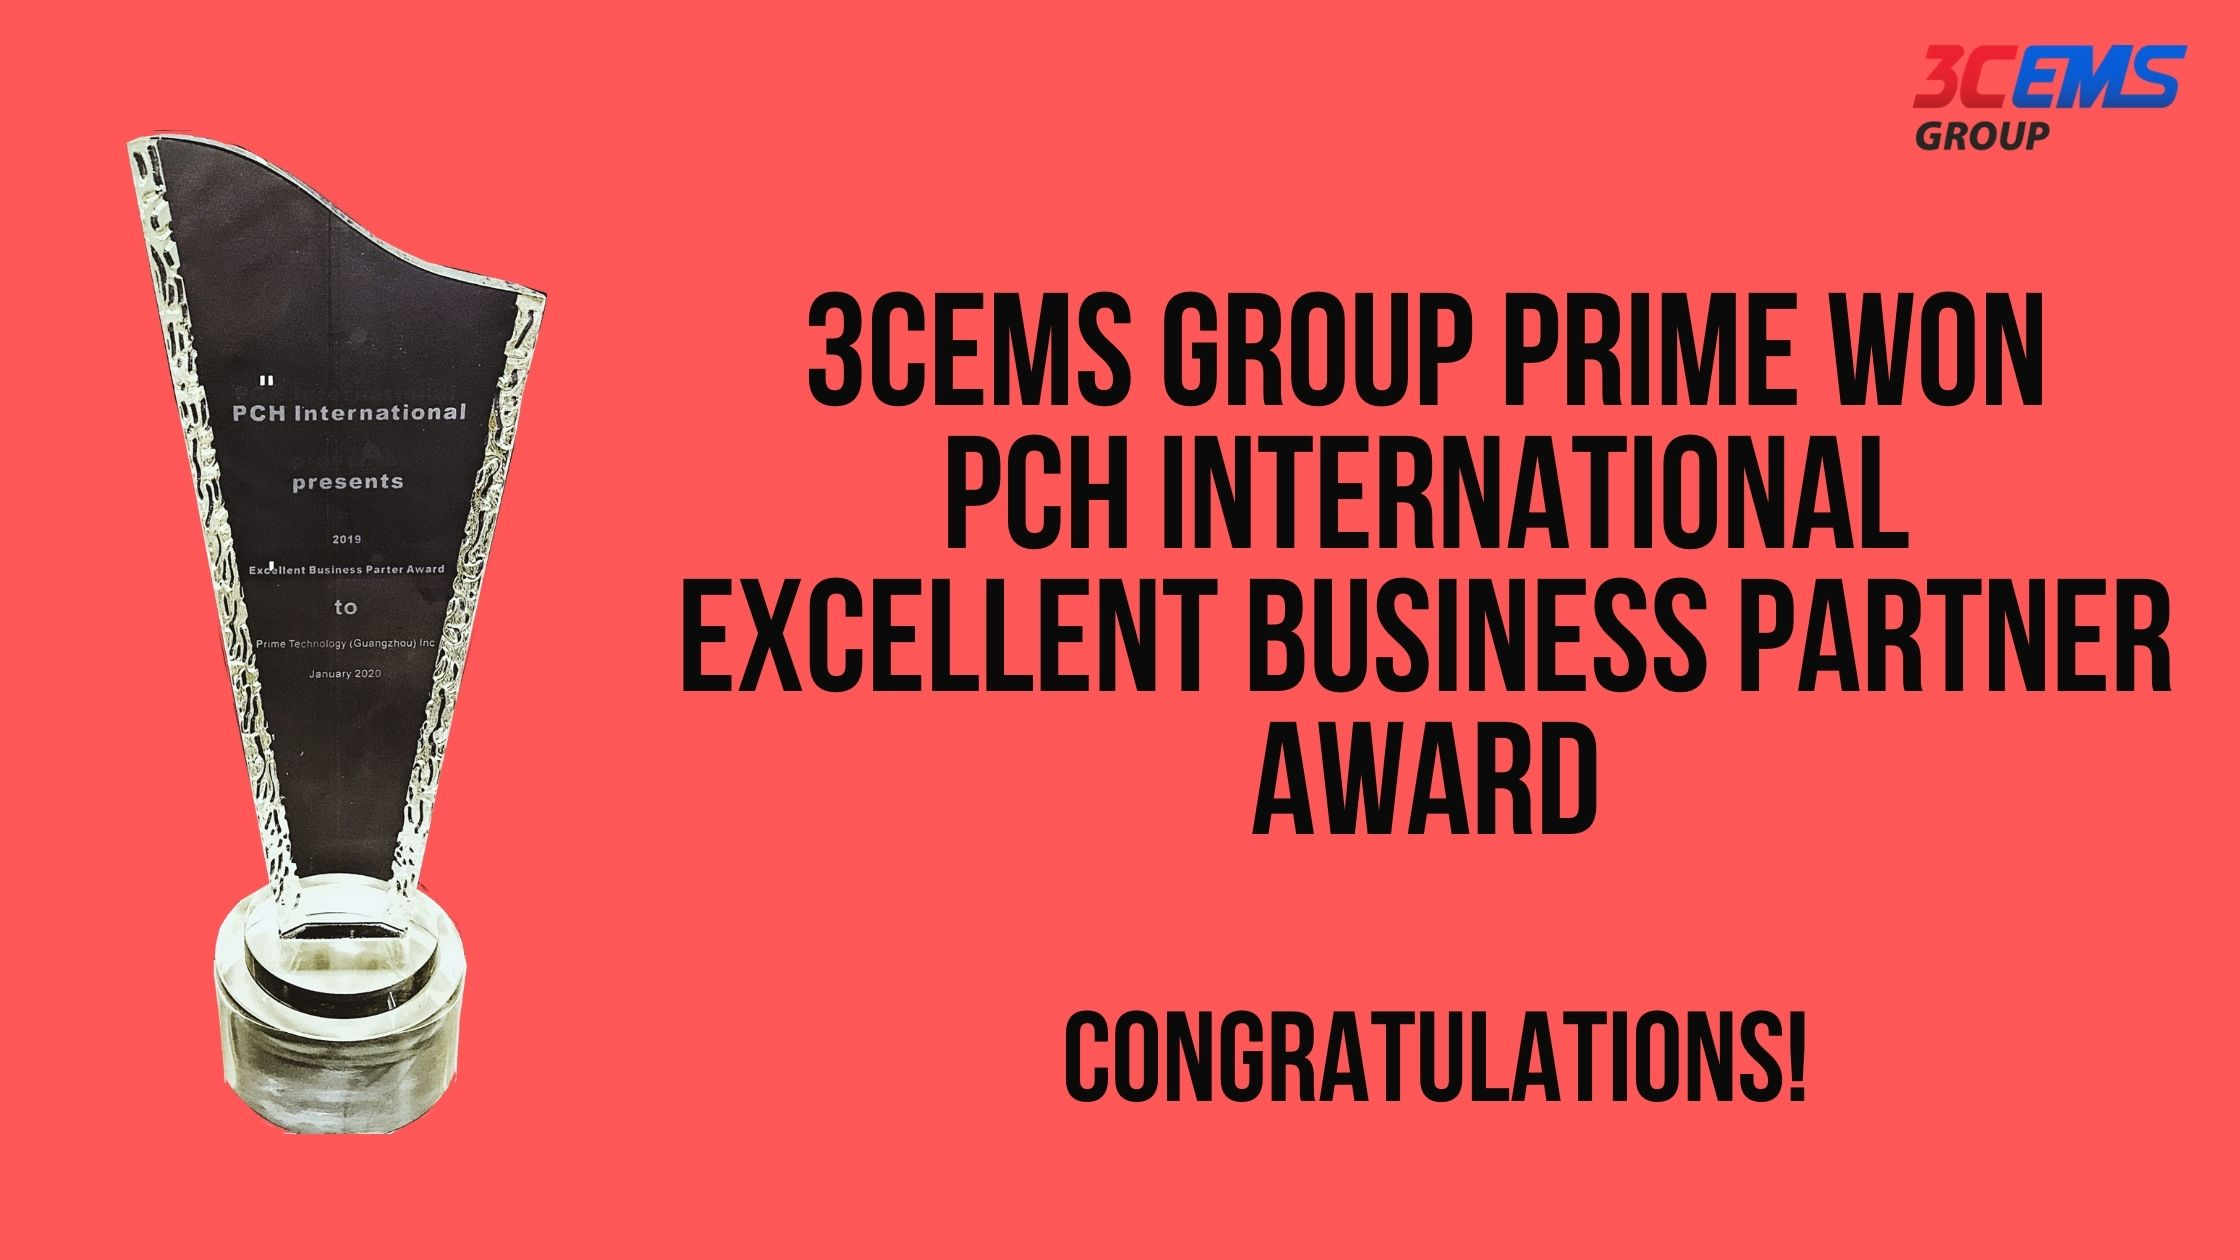 3CEMS Group honored with PCH's Excellent Business Partner Award